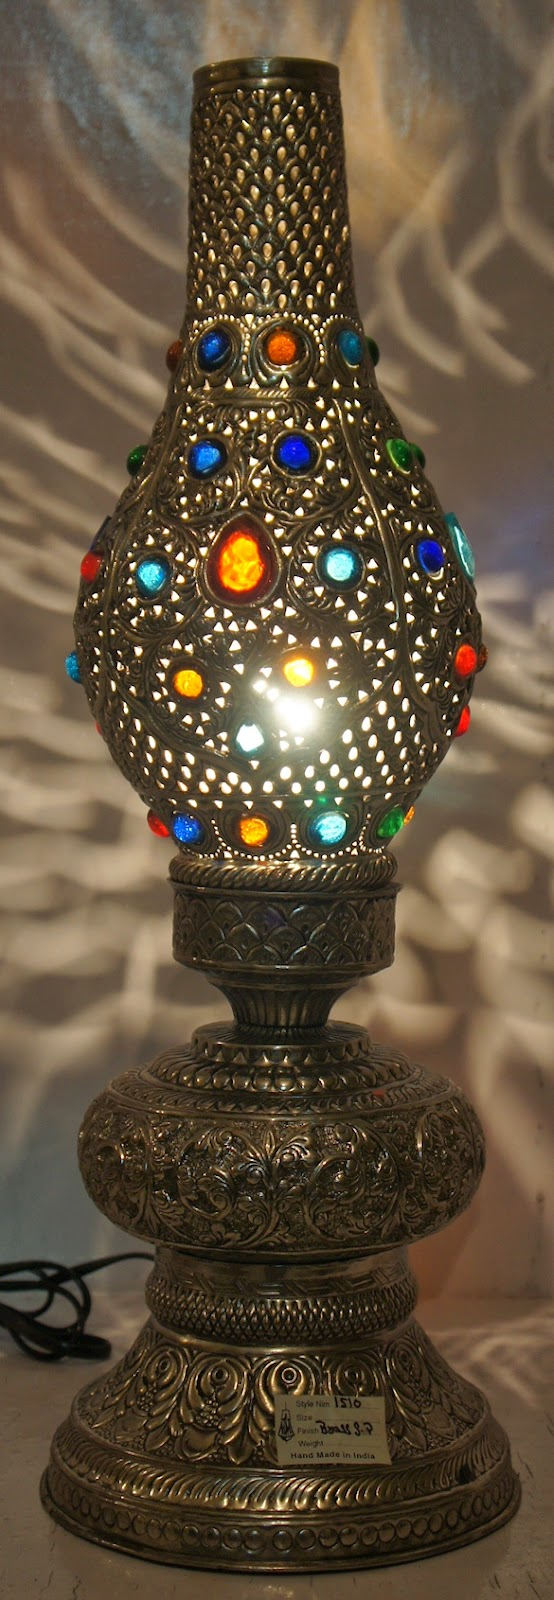 Moroccan lamps australia brass table lamps australia find out the most beautiful collections of brass table lamps online we are delhi india based lamps and lanterns online store we do export brass table aloadofball Images